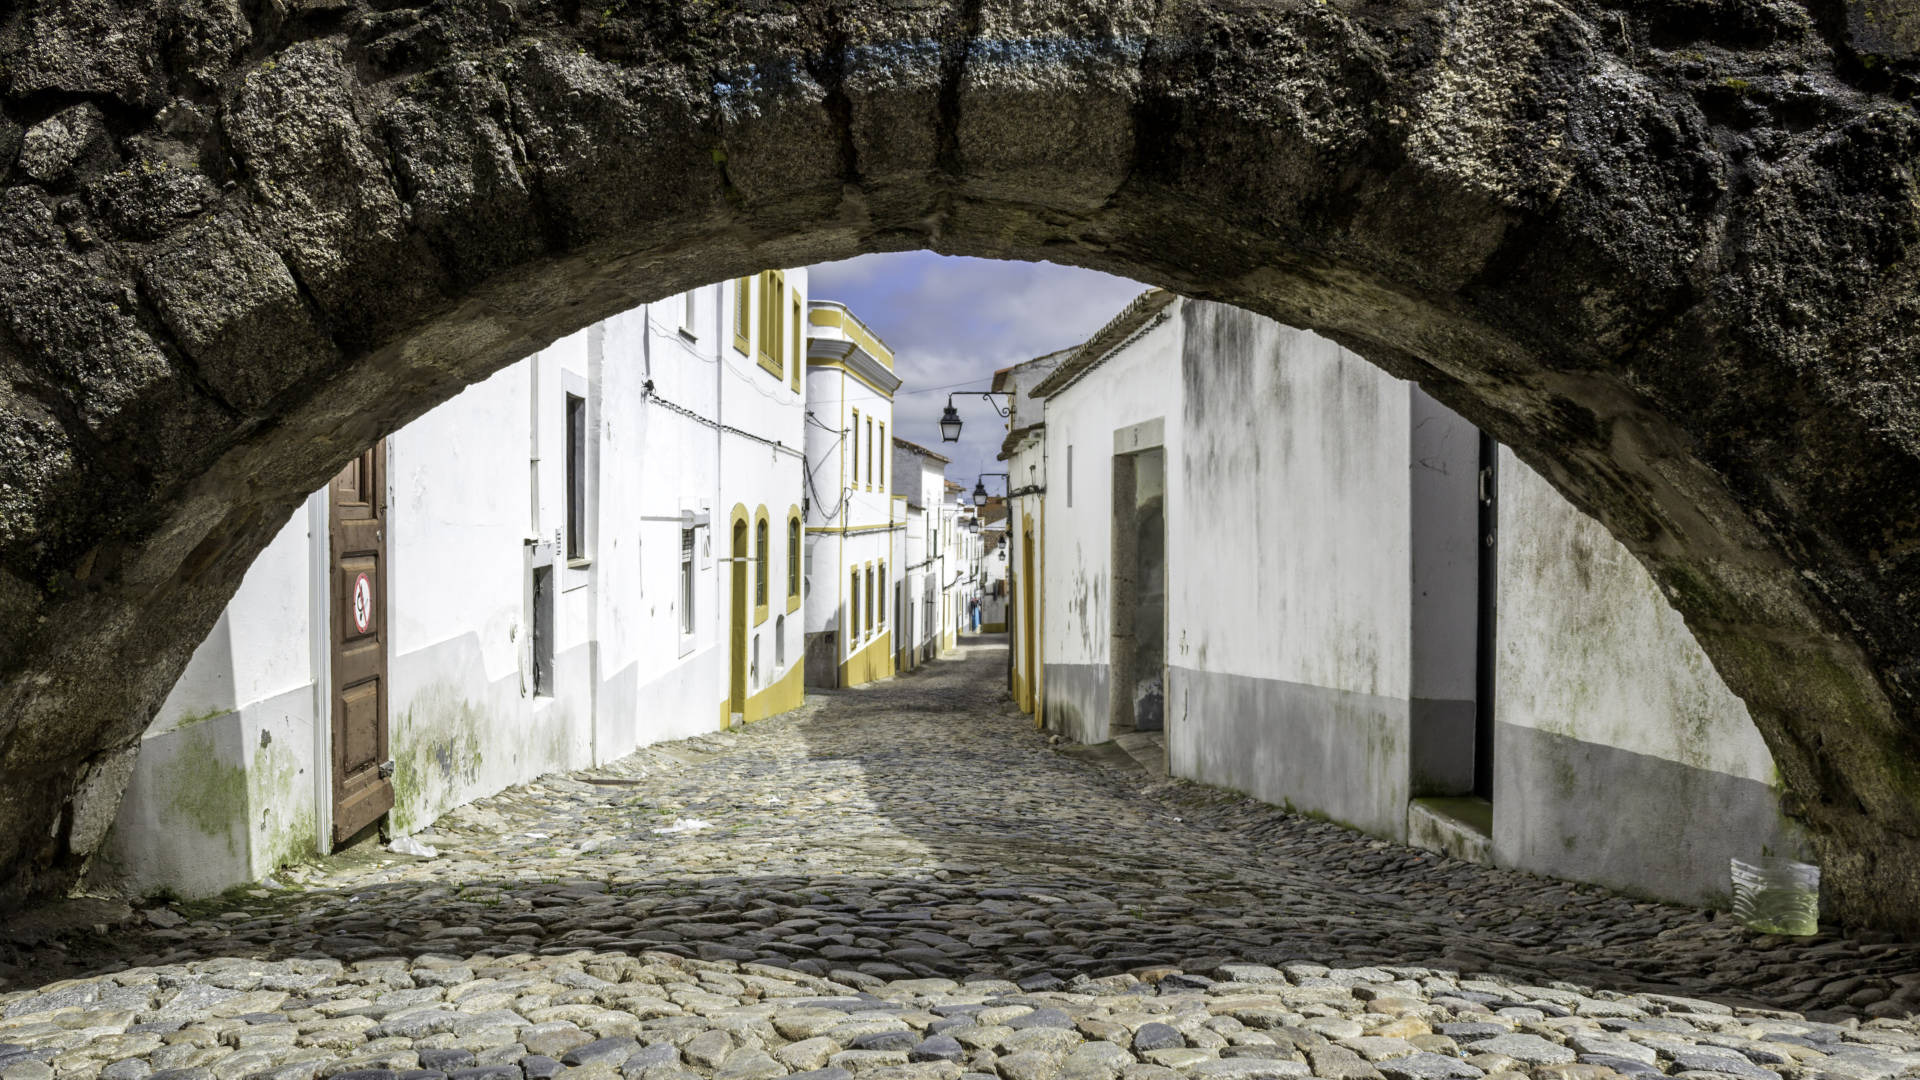 Custom Travel Planner Network-Portugal-Evora